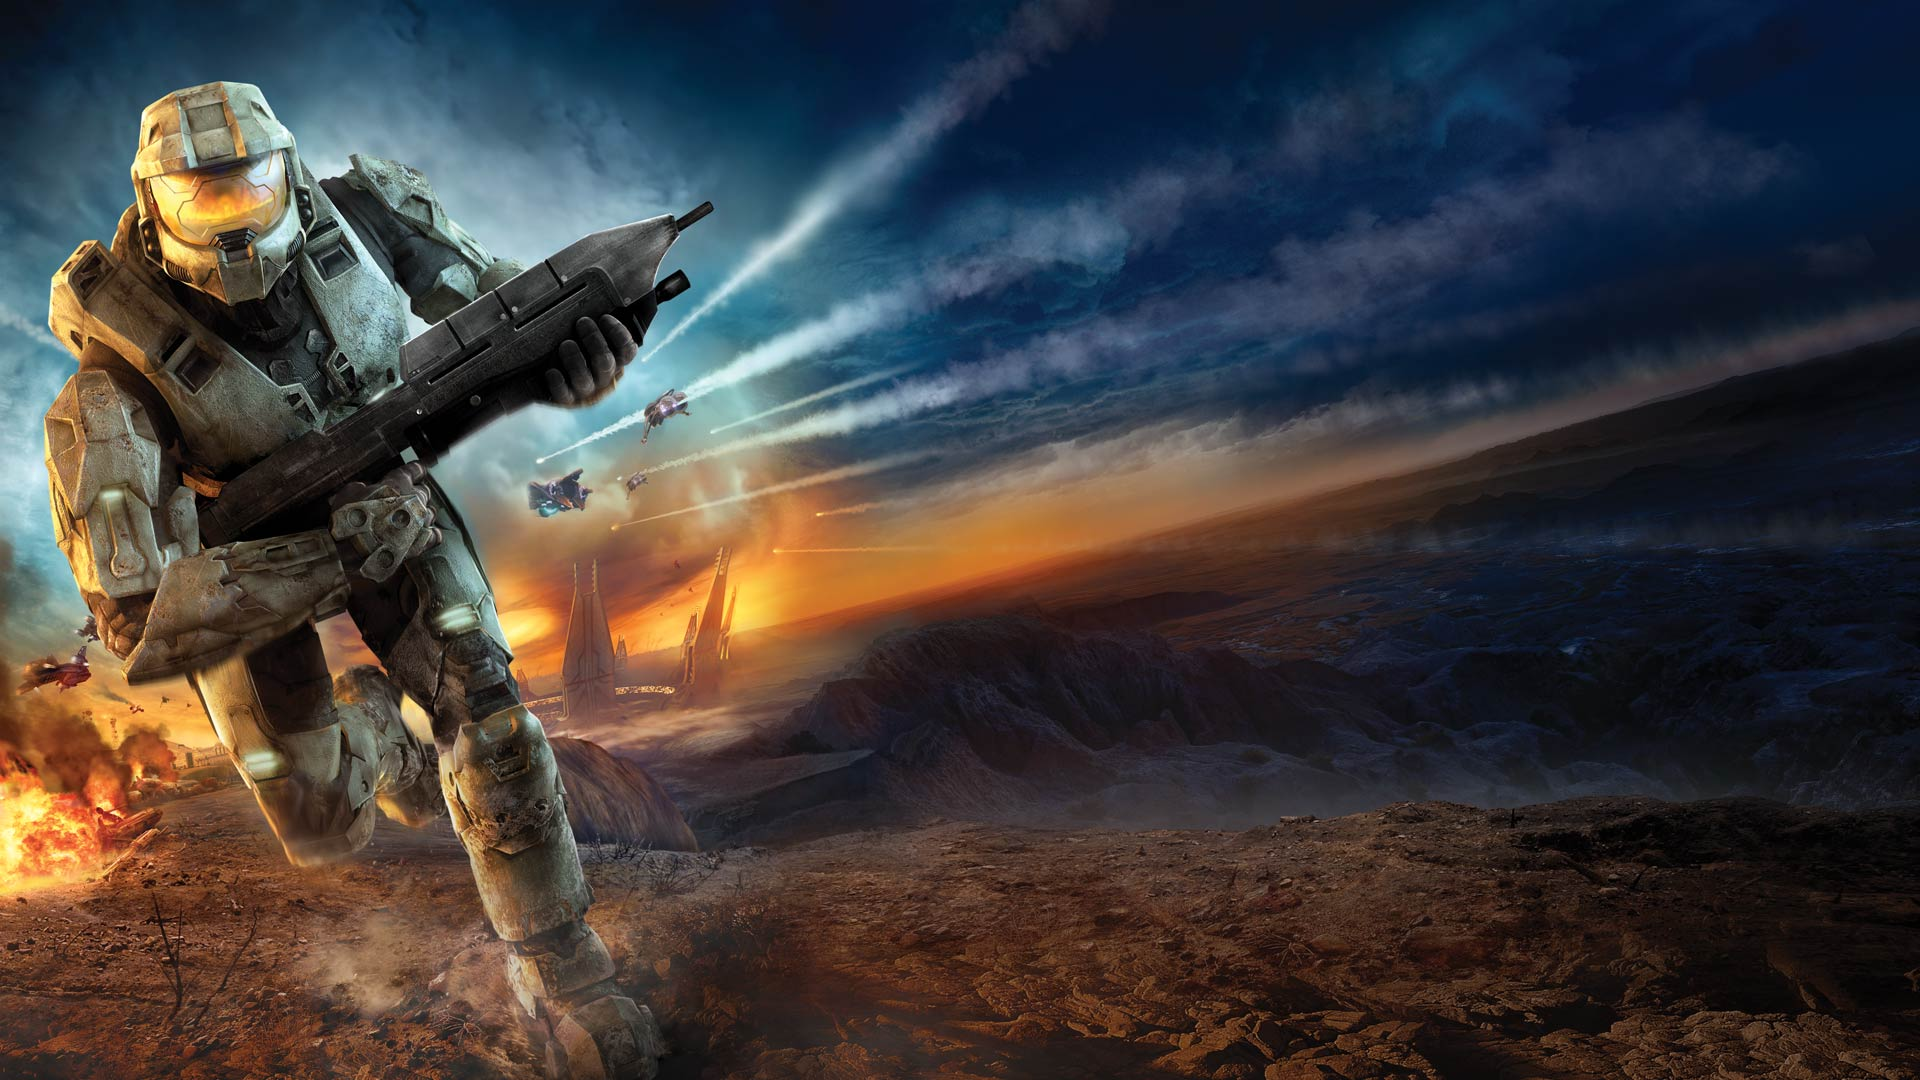 Full-HD-p-Halo-HD-Desktop-Backgrounds-1920×1080-Halo-Ador-wallpaper-wpc9005354